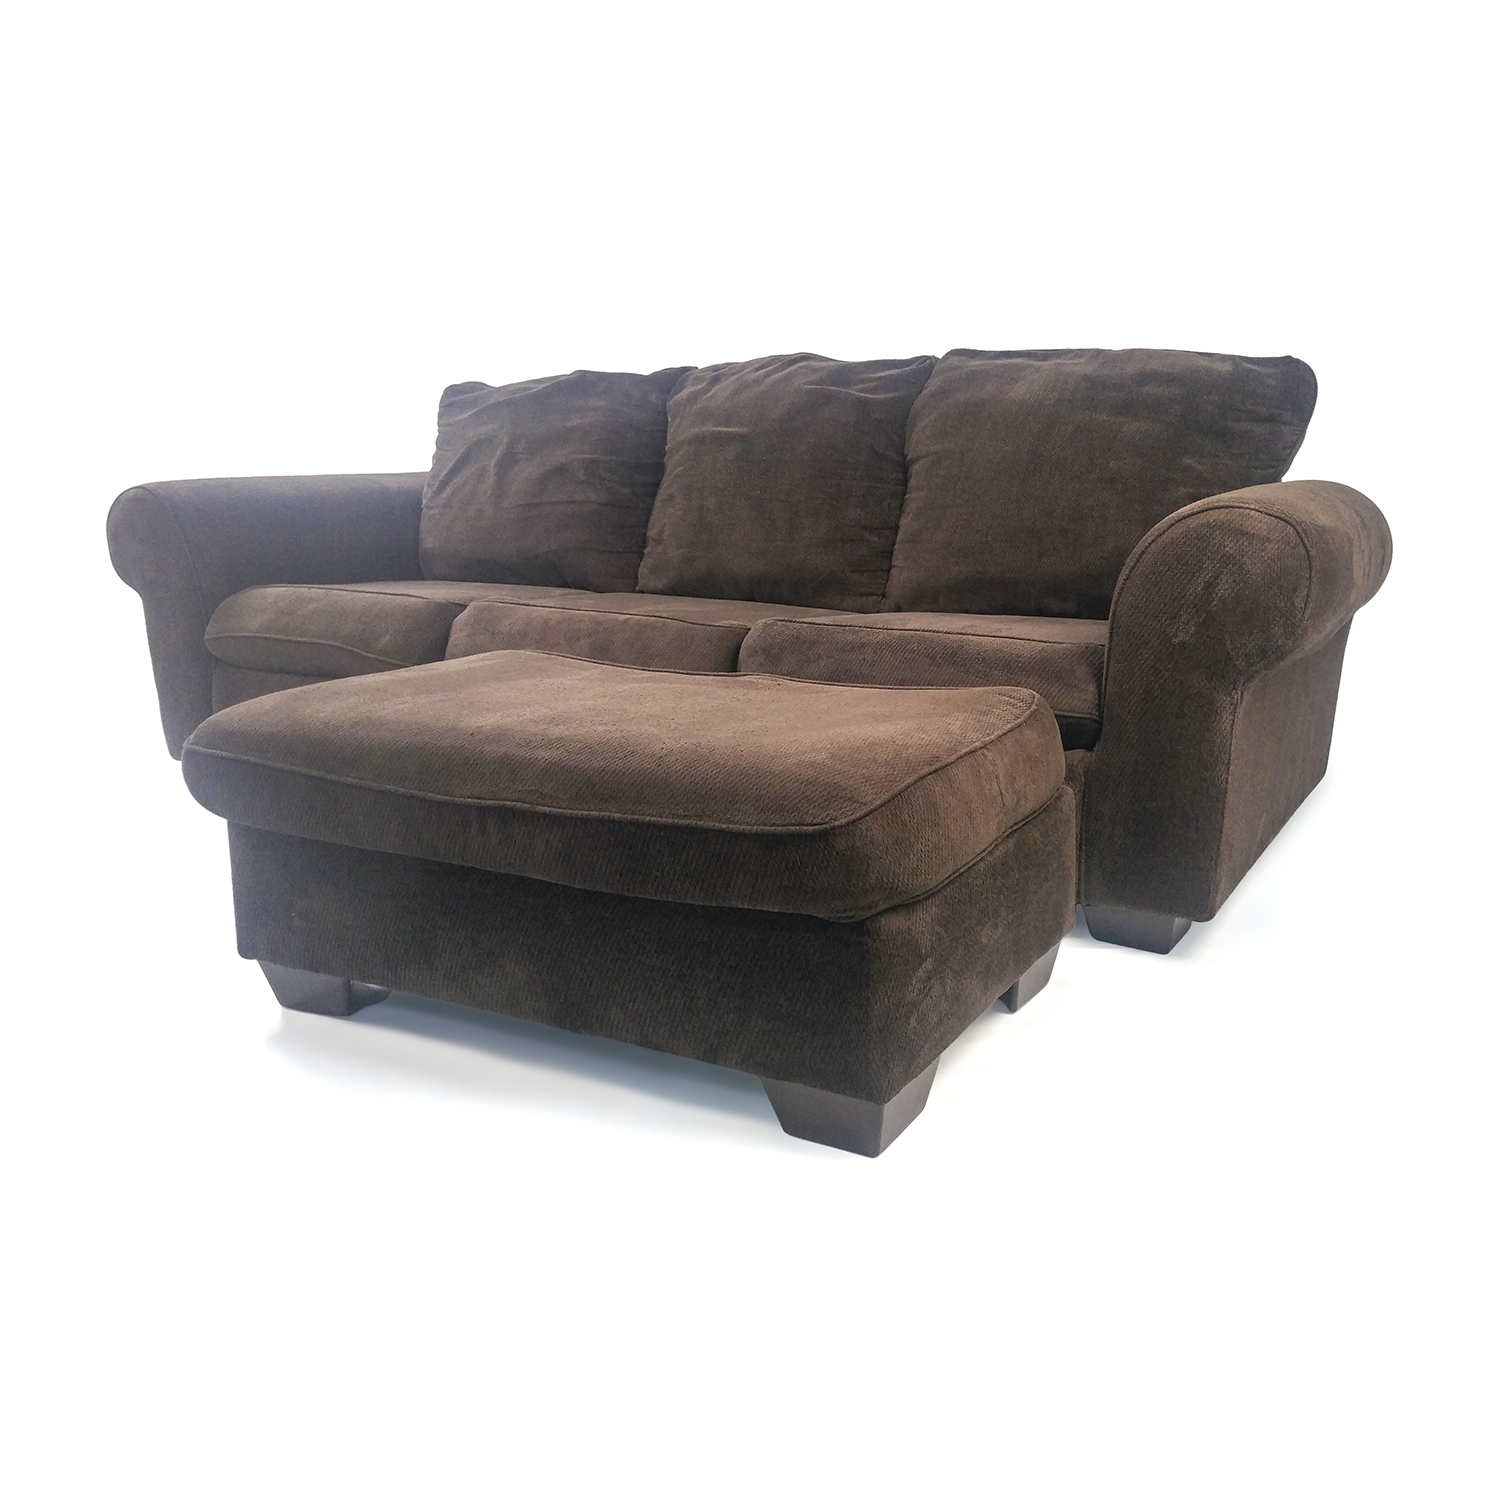 80 Off Custom Plush Couch With Ottoman Sofas